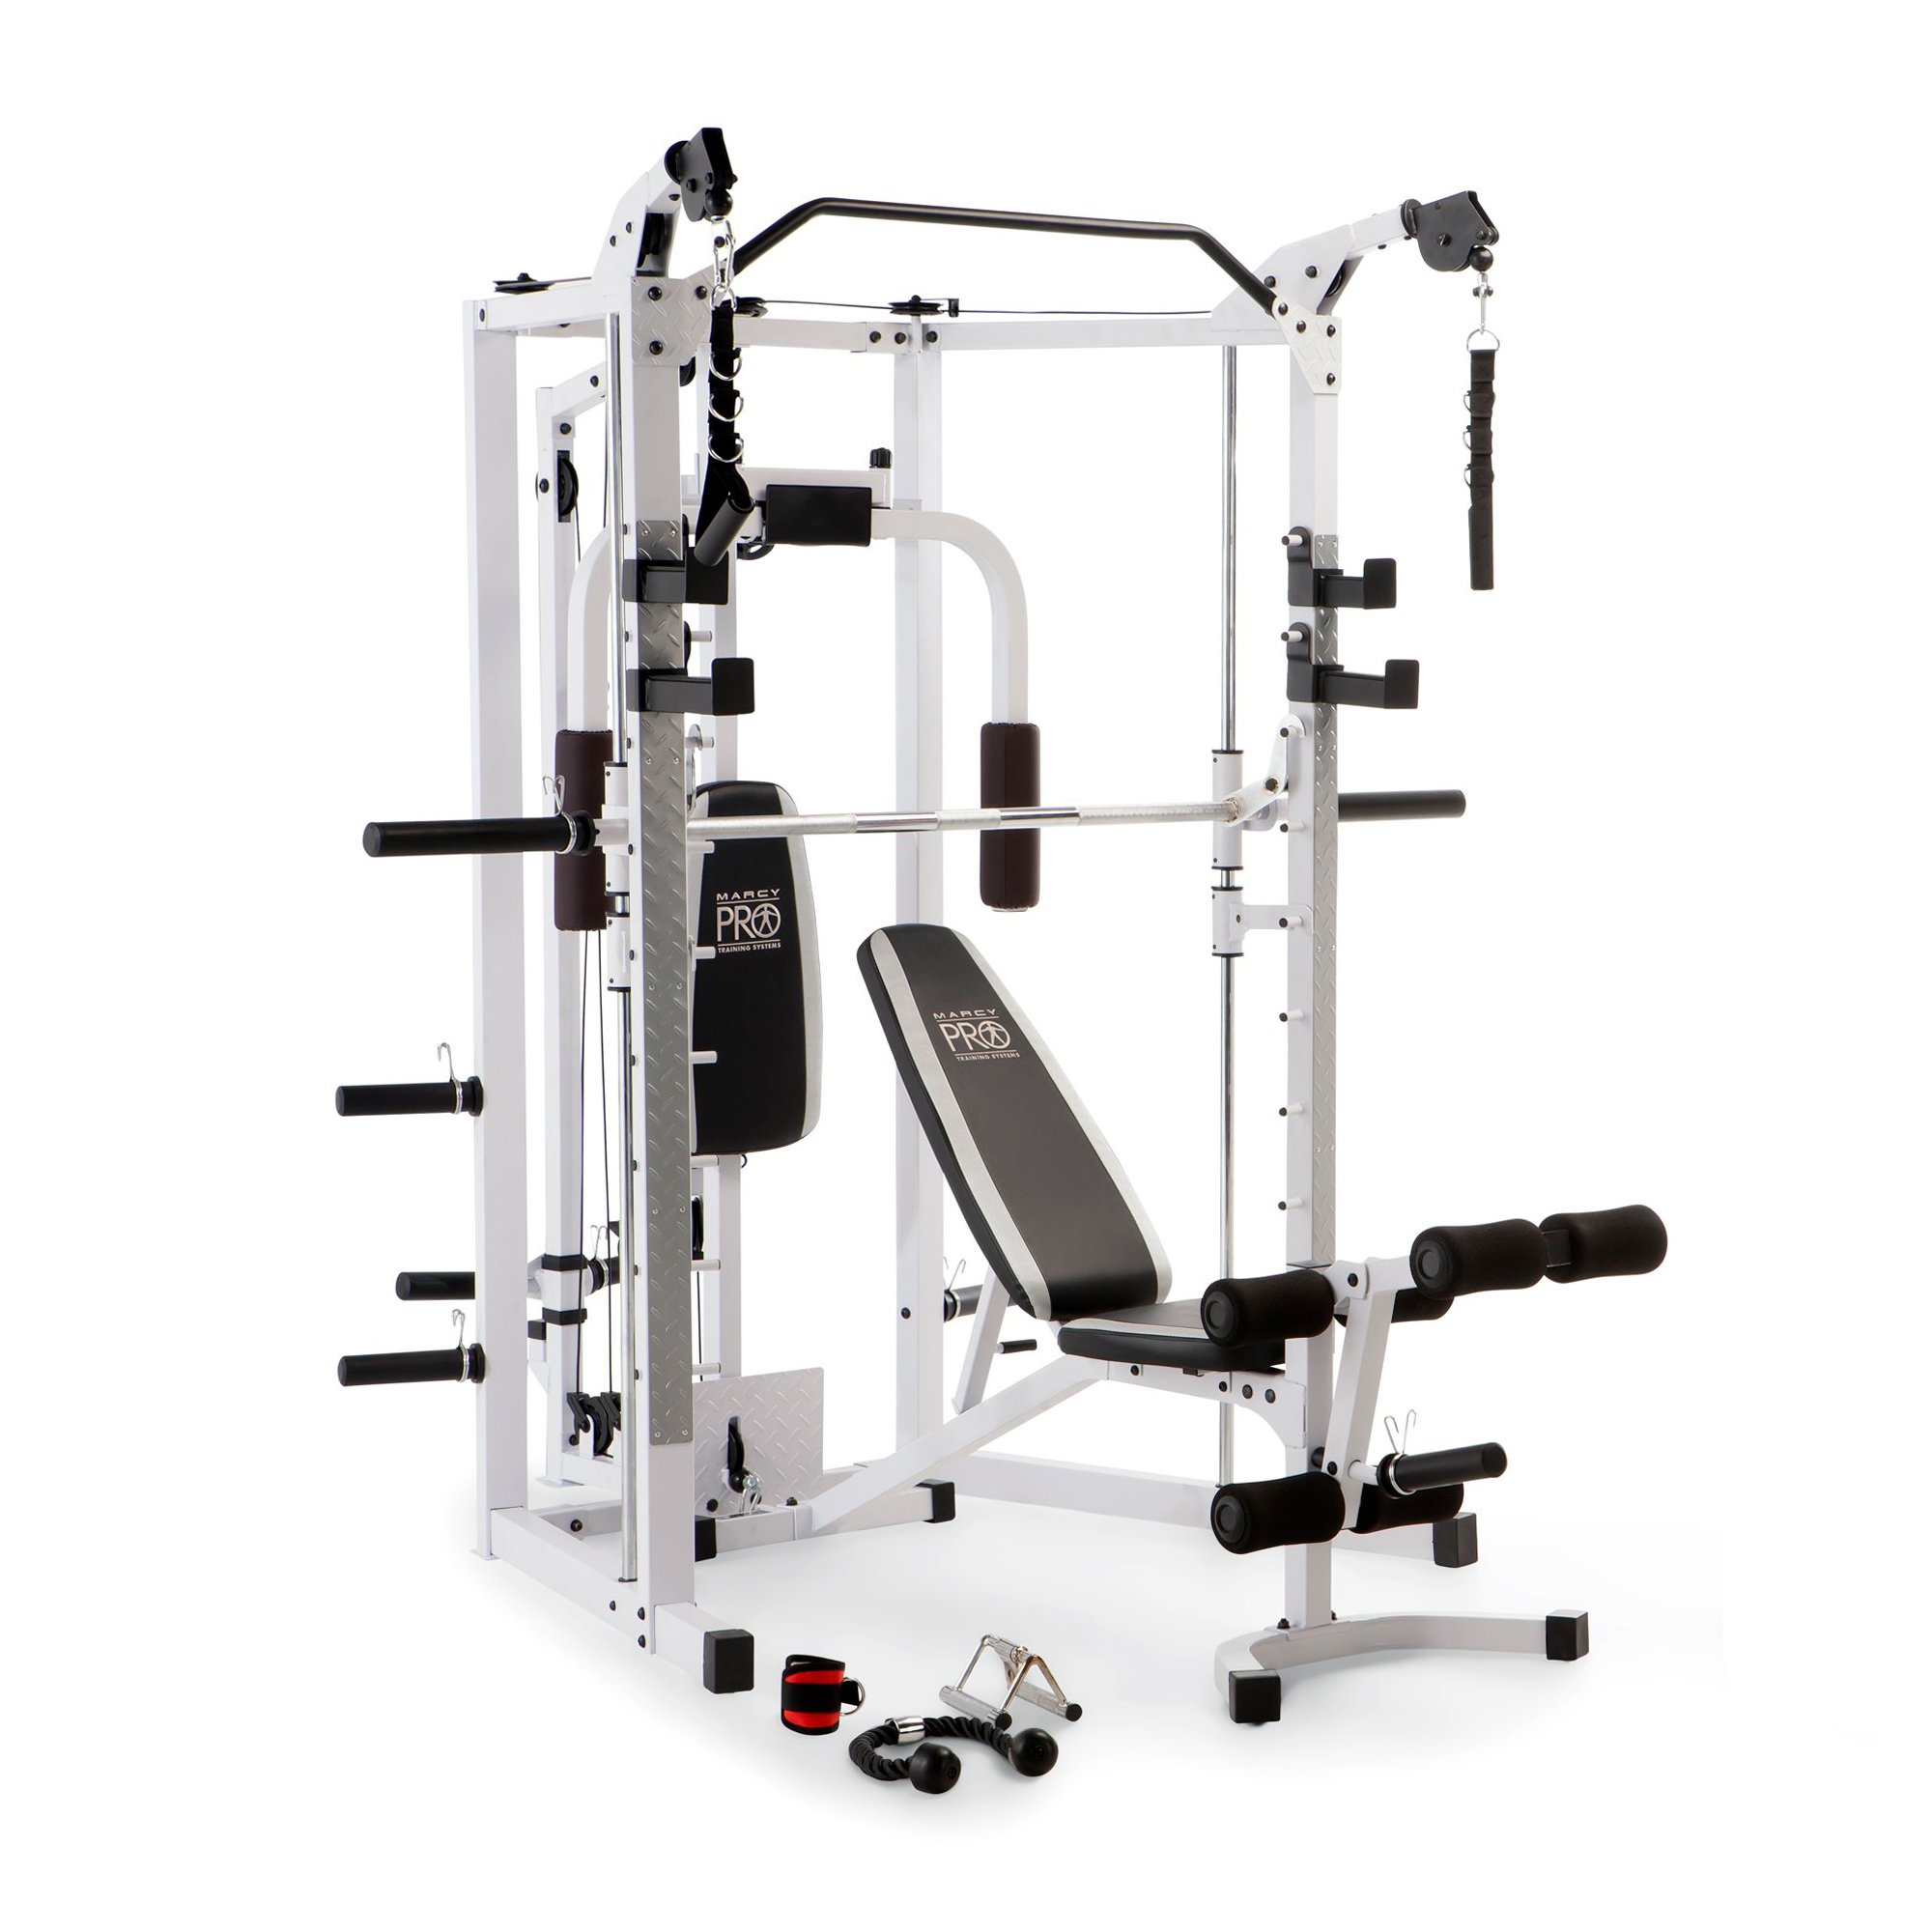 Marcy 5276 Combo Smith Heavy-Duty Total Body Strength Home Gym Machine, White by Marcy Fitness